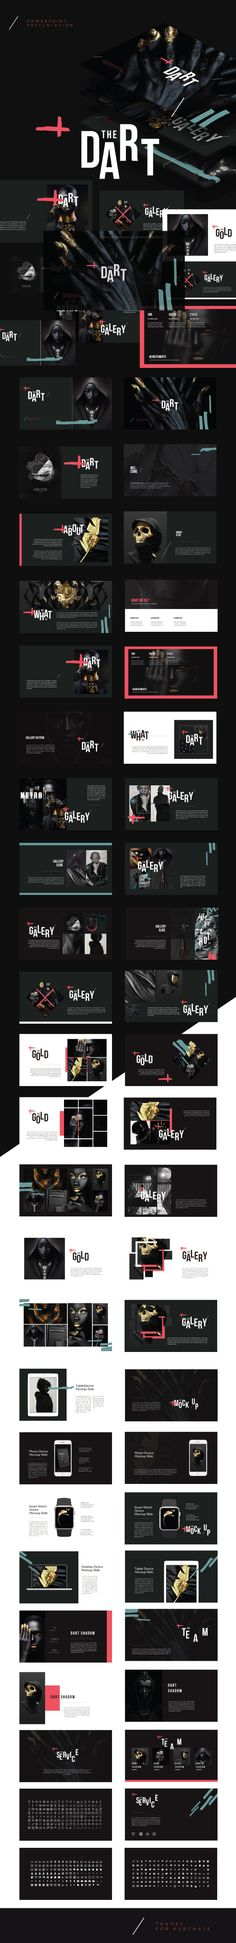 Dart - Creative Multipurpose PowerPoint Presentation Template